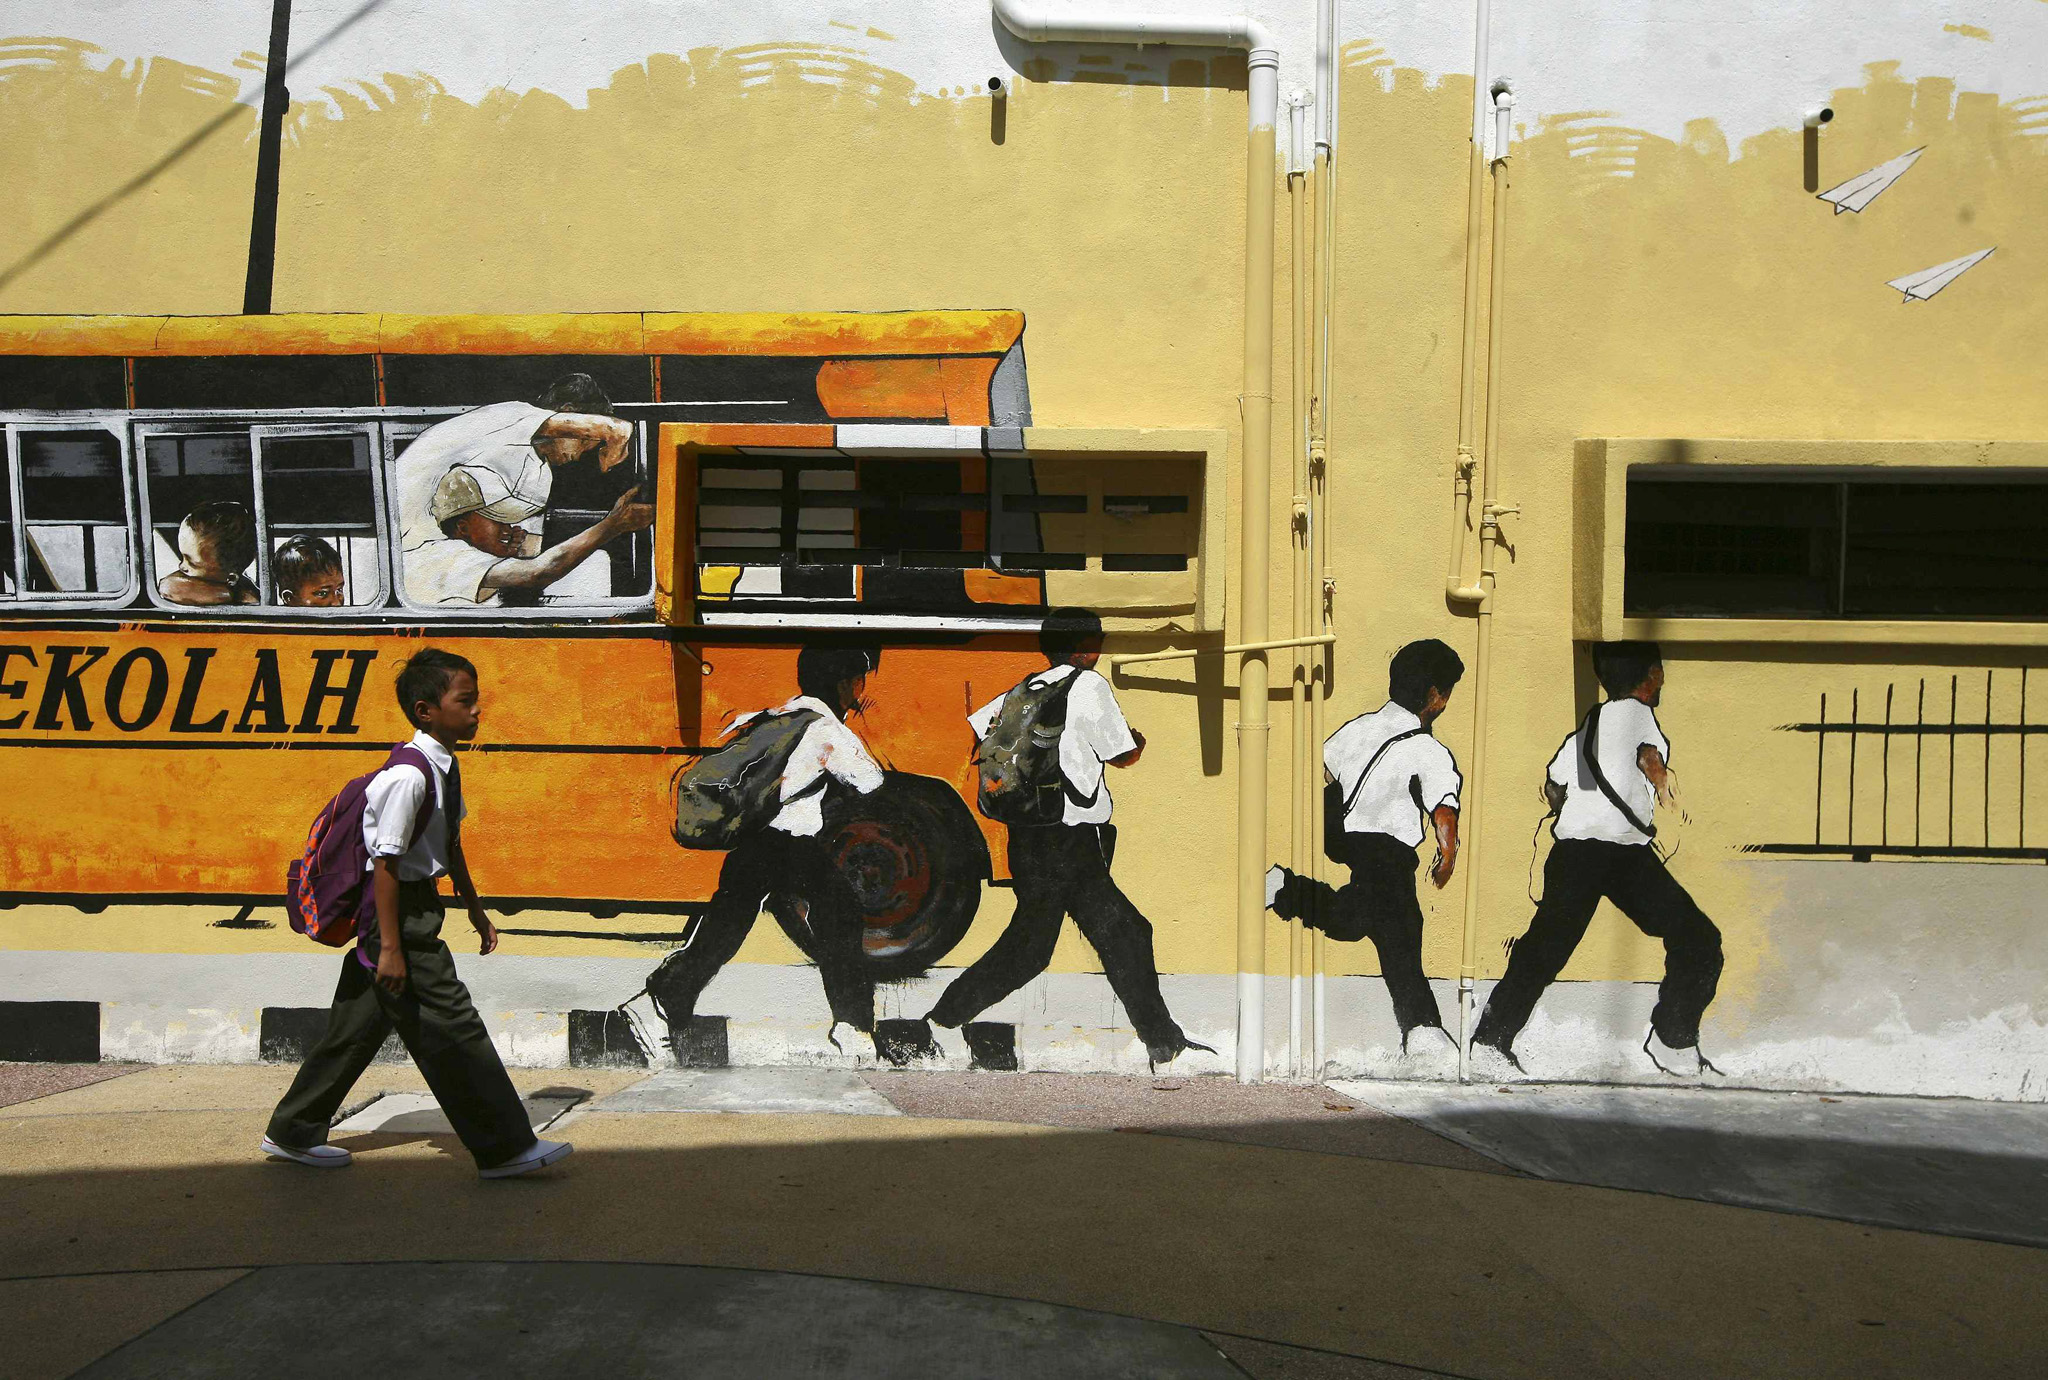 A school boy walks past a street mural depicting a school bus and students in Shah Alam, outside Kuala Lumpur...A school boy walks past a street mural depicting a school bus and students in Shah Alam, outside Kuala Lumpur January 2, 2014. Malaysia begins the first day of the new school year of 2014 on January 2. REUTERS/Samsul Said